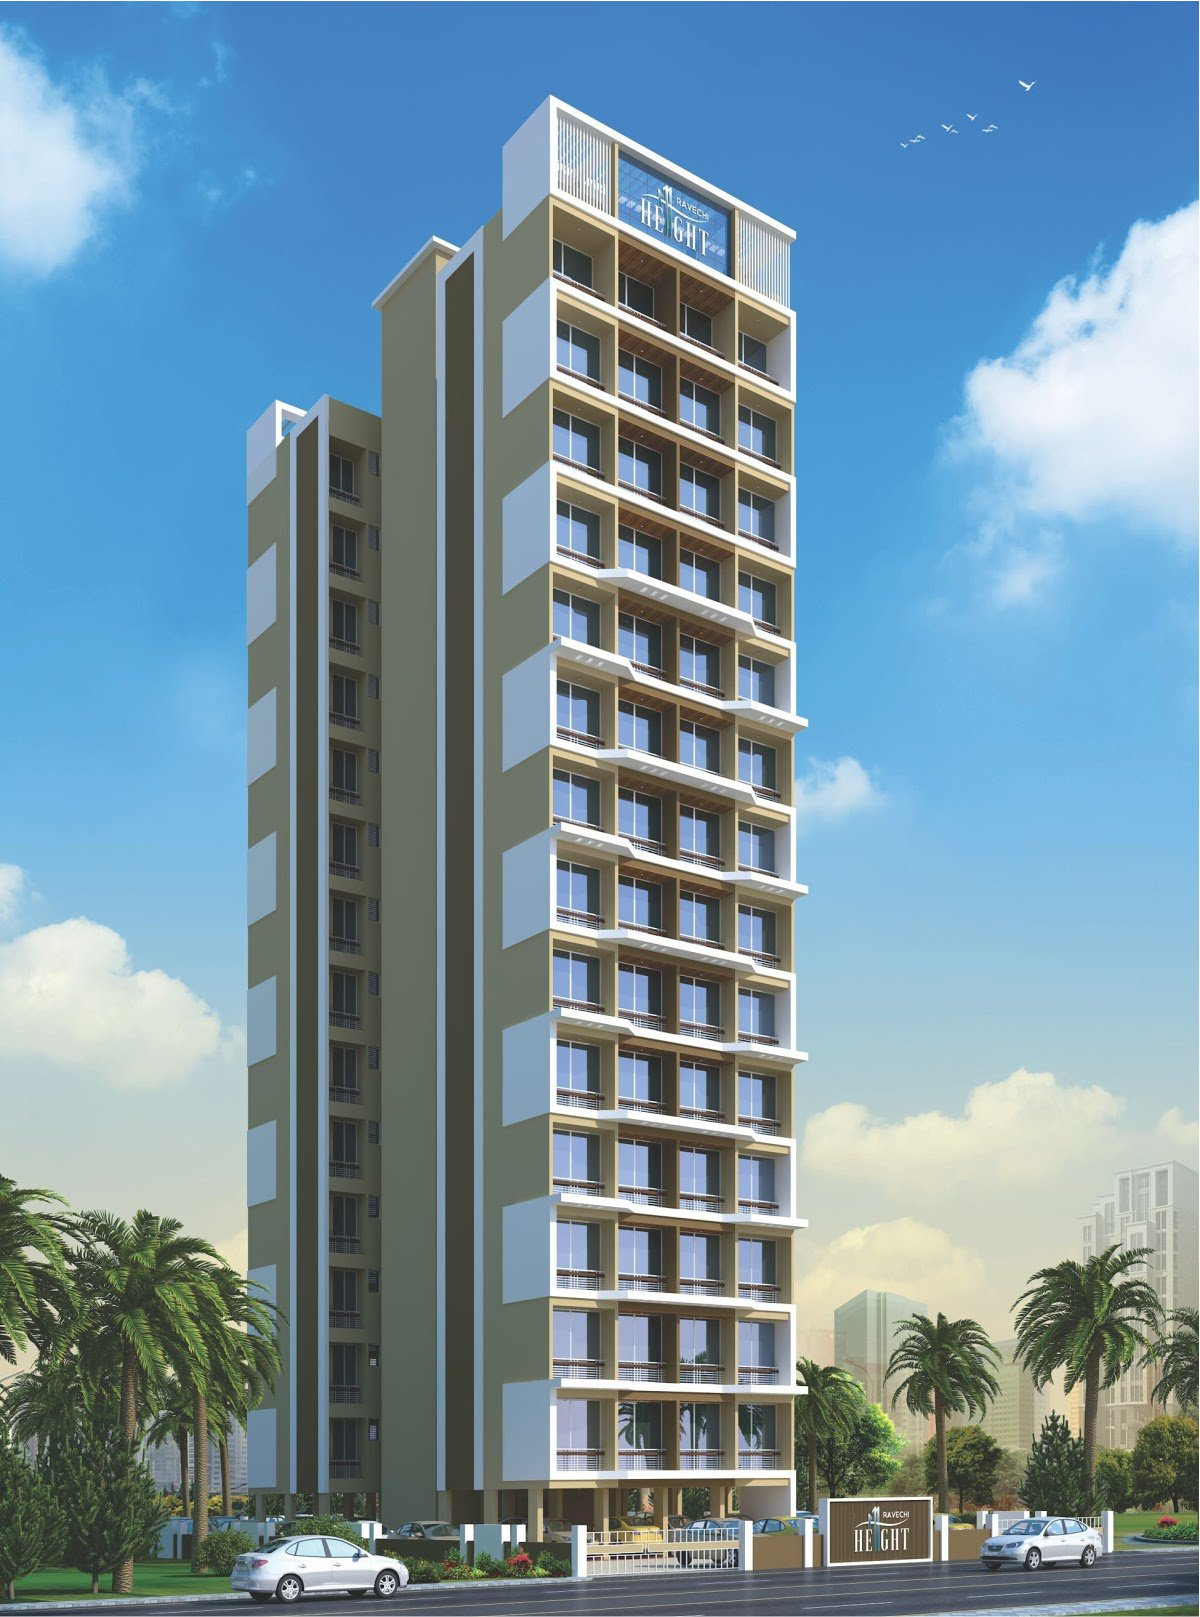 1 BHK Flats in kamothe Navi Mumbai in Ravechi Heights - Sqmtrs